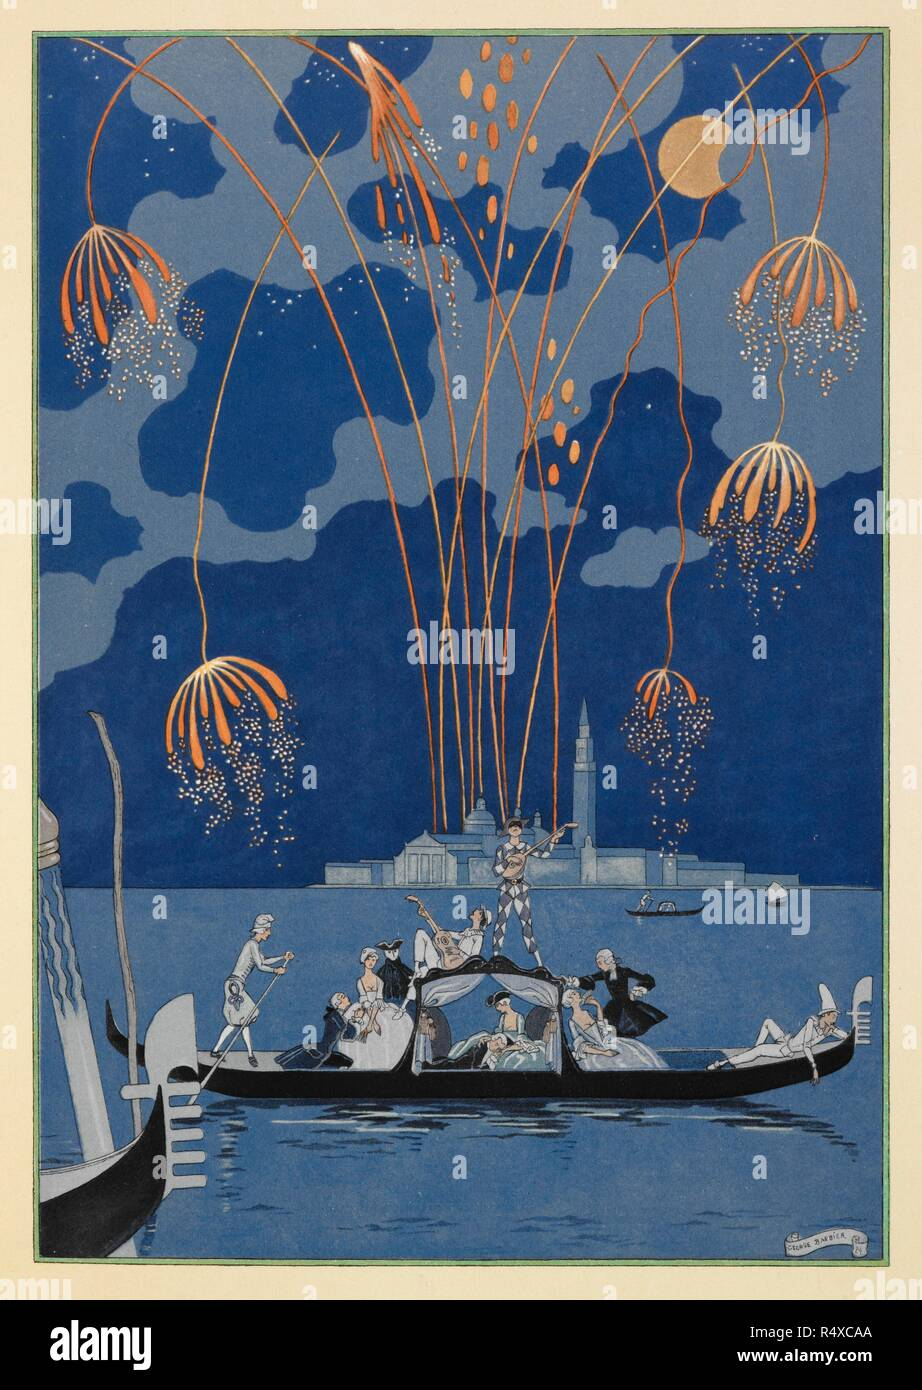 En bateau. Fireworks in Venice. People in a gondola. Fêtes galantes. [Poèmes]. Illustrations de George Barbier. Paris: H. Piazza, 1928. Fêtes Galantes is an album consisting of romantic prints of French life among the upper classes of the 19th century. Rich aristocrats of the French court used to play gallant scenes from the commedia dell' arte that were called Fetes Galantes. The prints accompany Paul Verlaine's poetry. Each album contains 20 lithograph prints with pochoir highlighting by George Barbier. Source: L.45/2847, before page 55. Language: French. - Stock Image